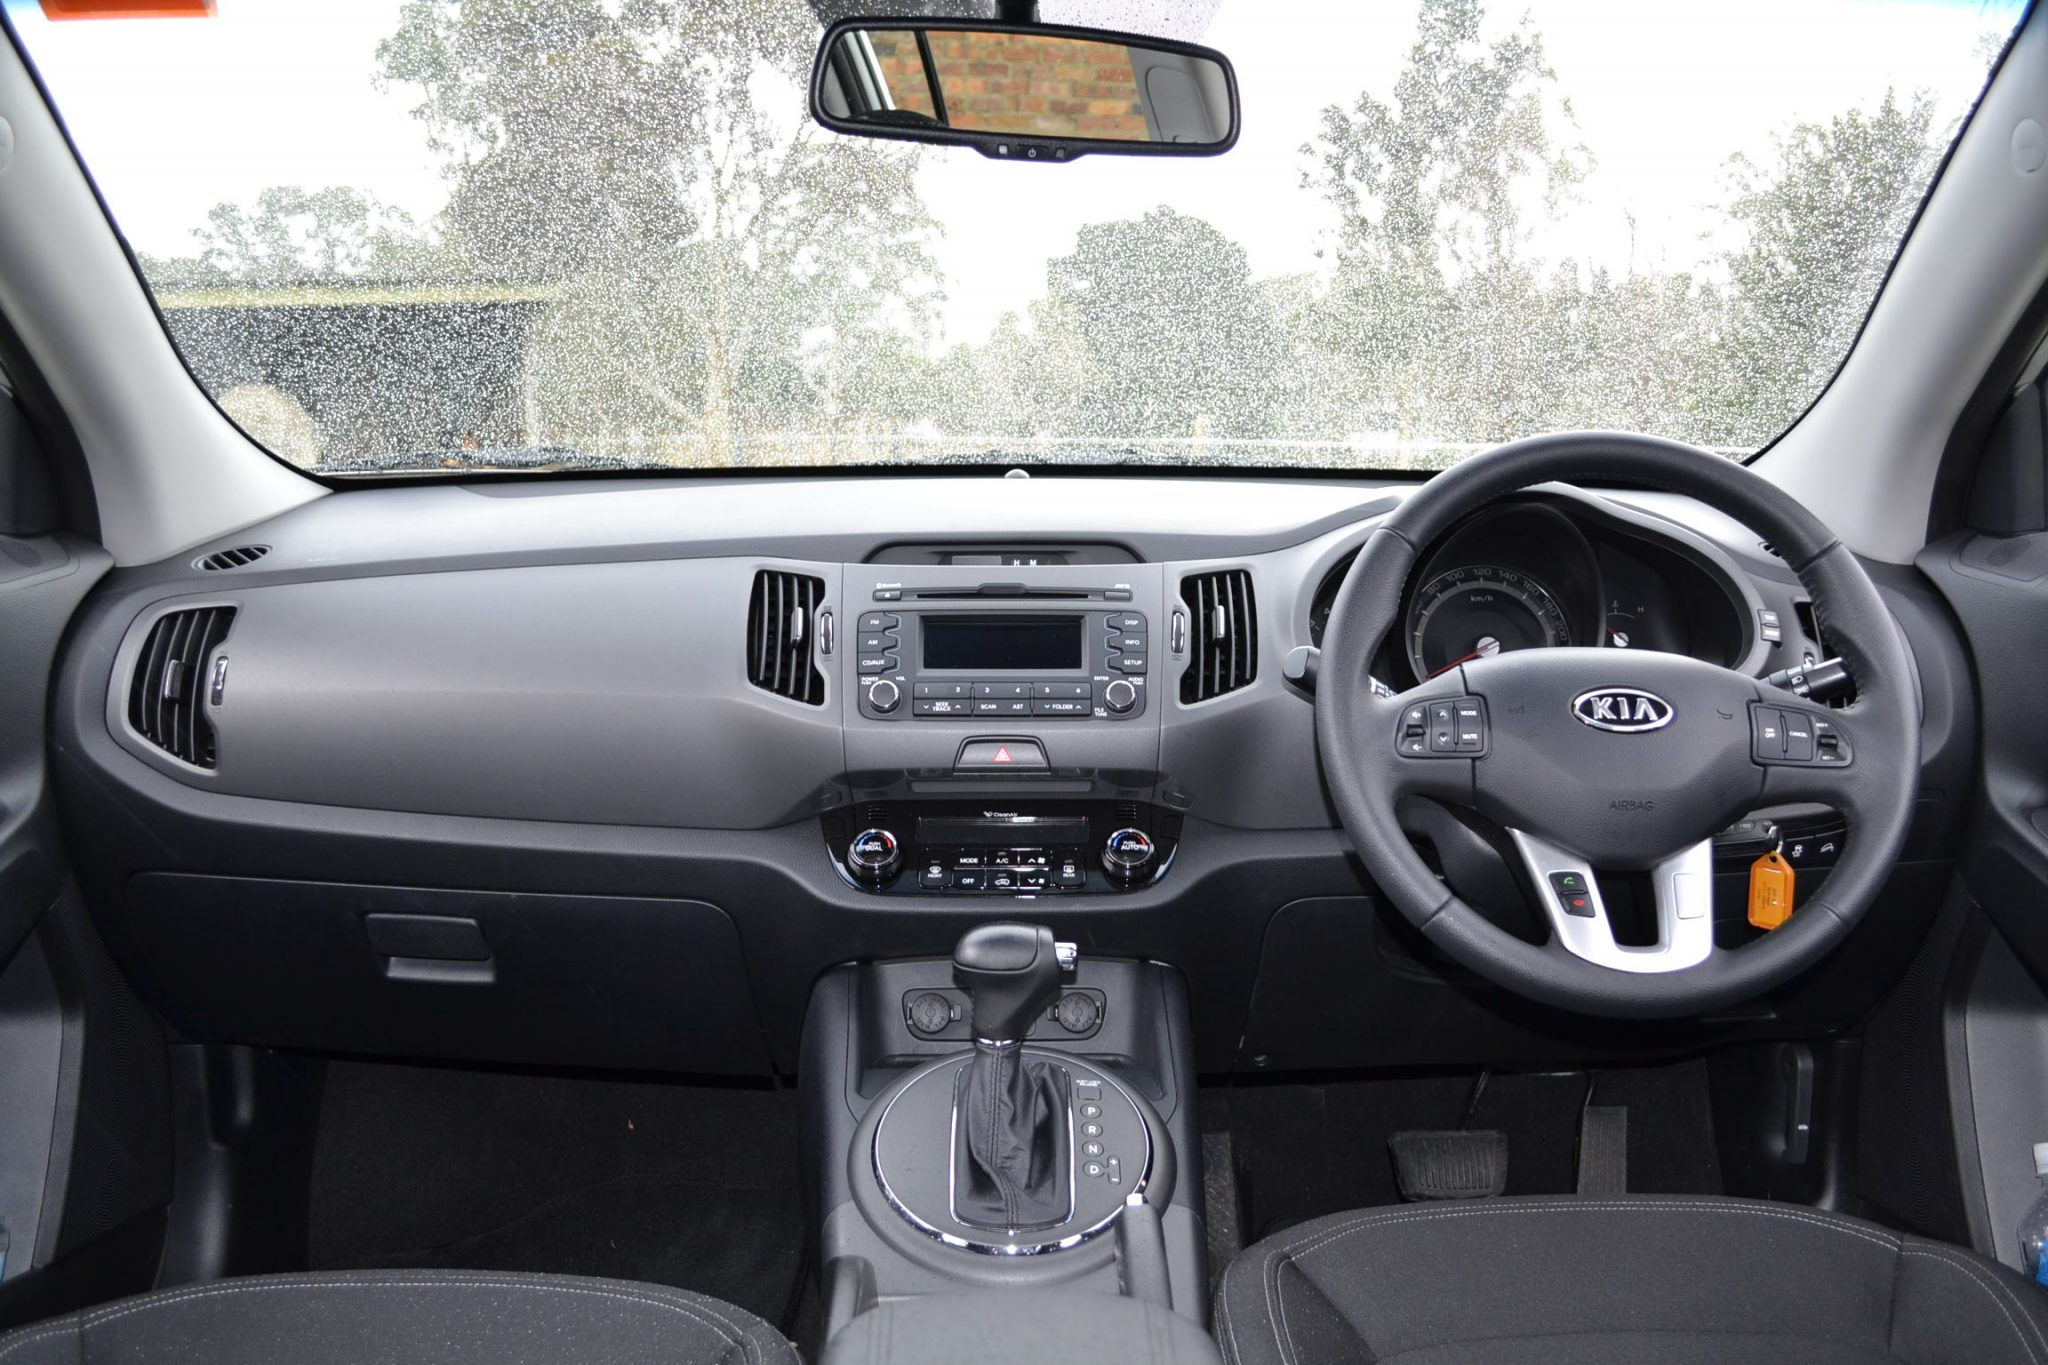 kia sportage review 2012 sli diesel automatic interior shot. Black Bedroom Furniture Sets. Home Design Ideas